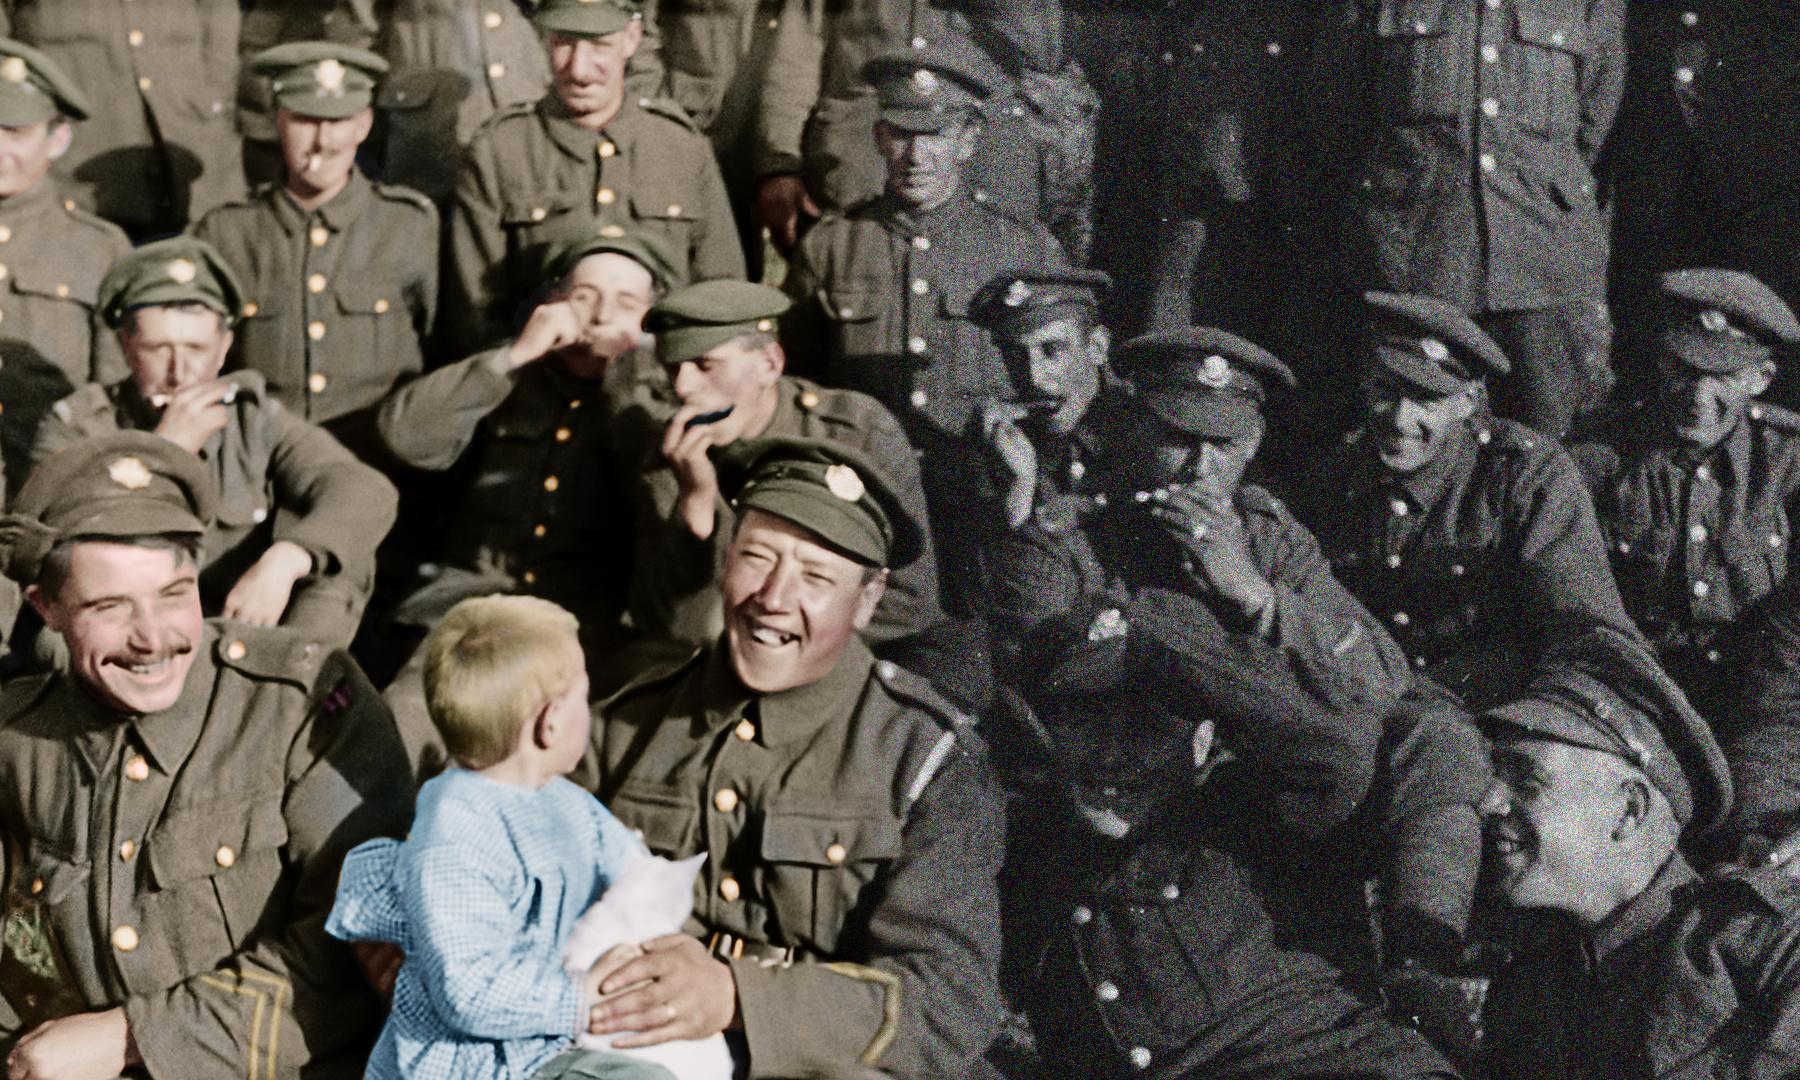 'The faces are unbelievable': Peter Jackson on They Shall Not Grow Old